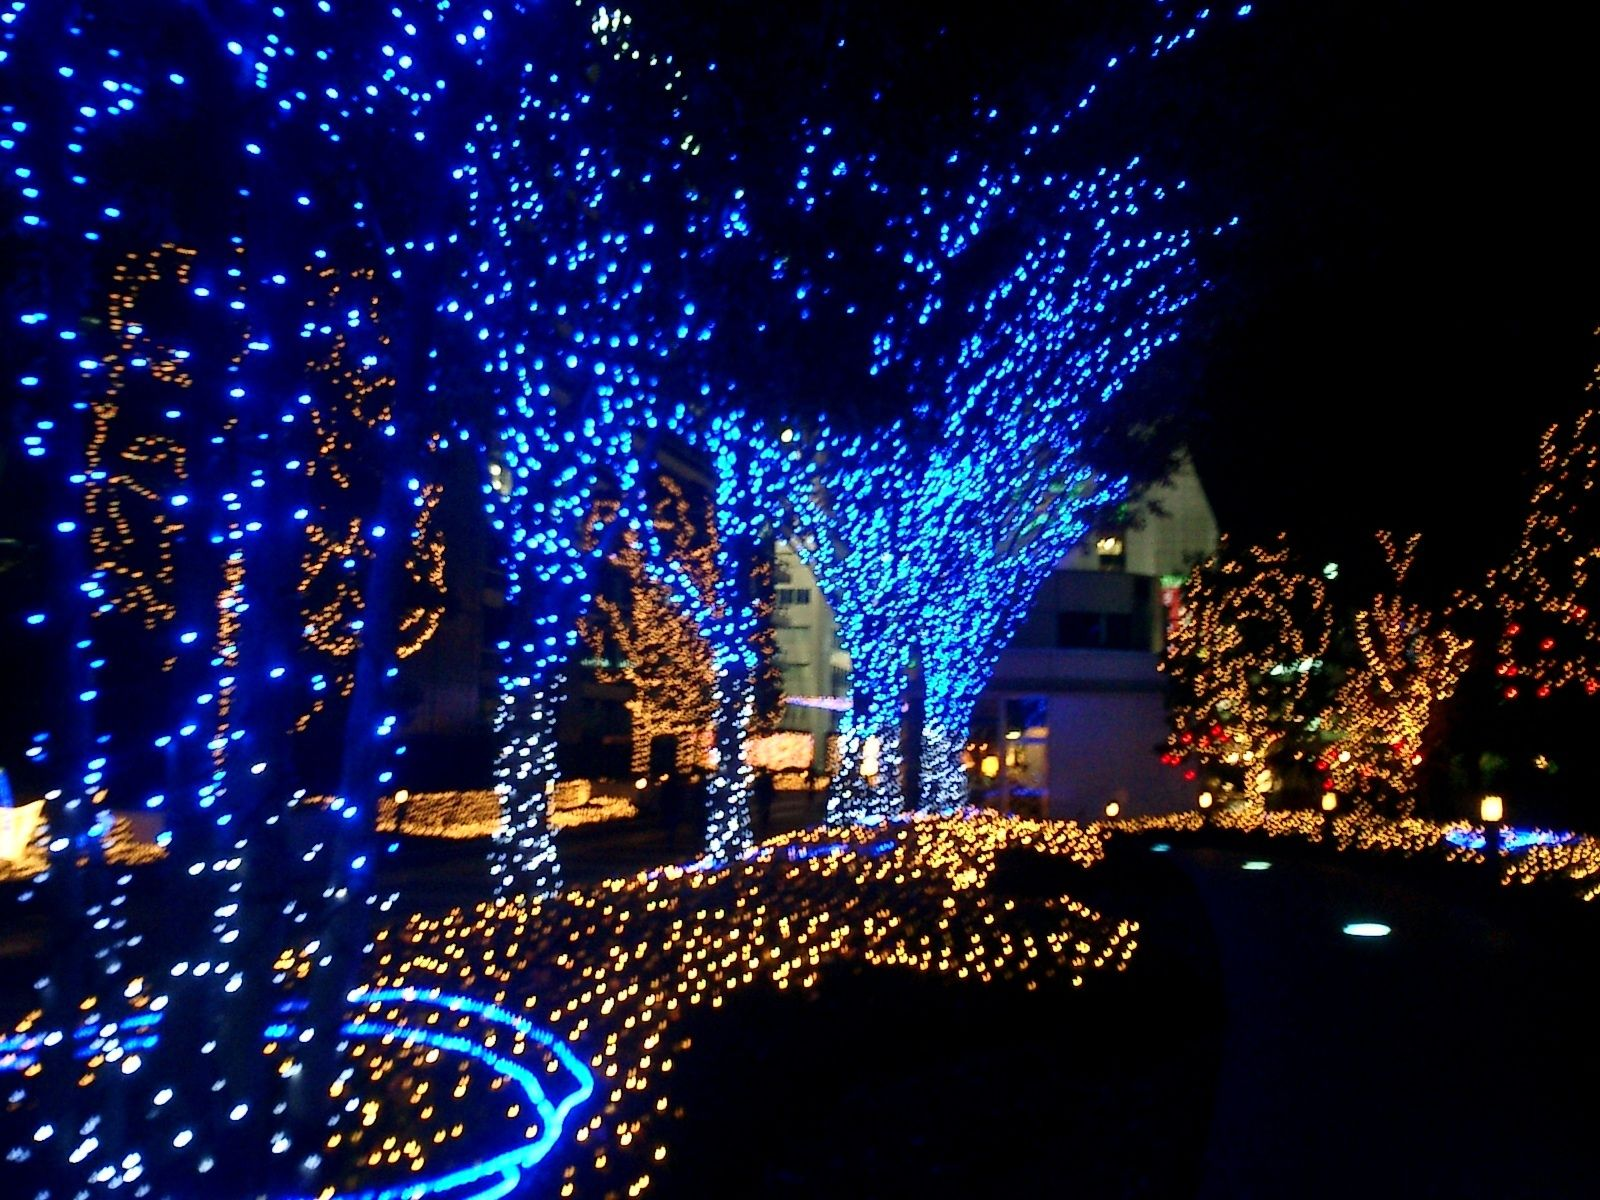 Christmas Lights Outdoor Led Bedroom Decor Dorm Rooms Decorating Bedrooms